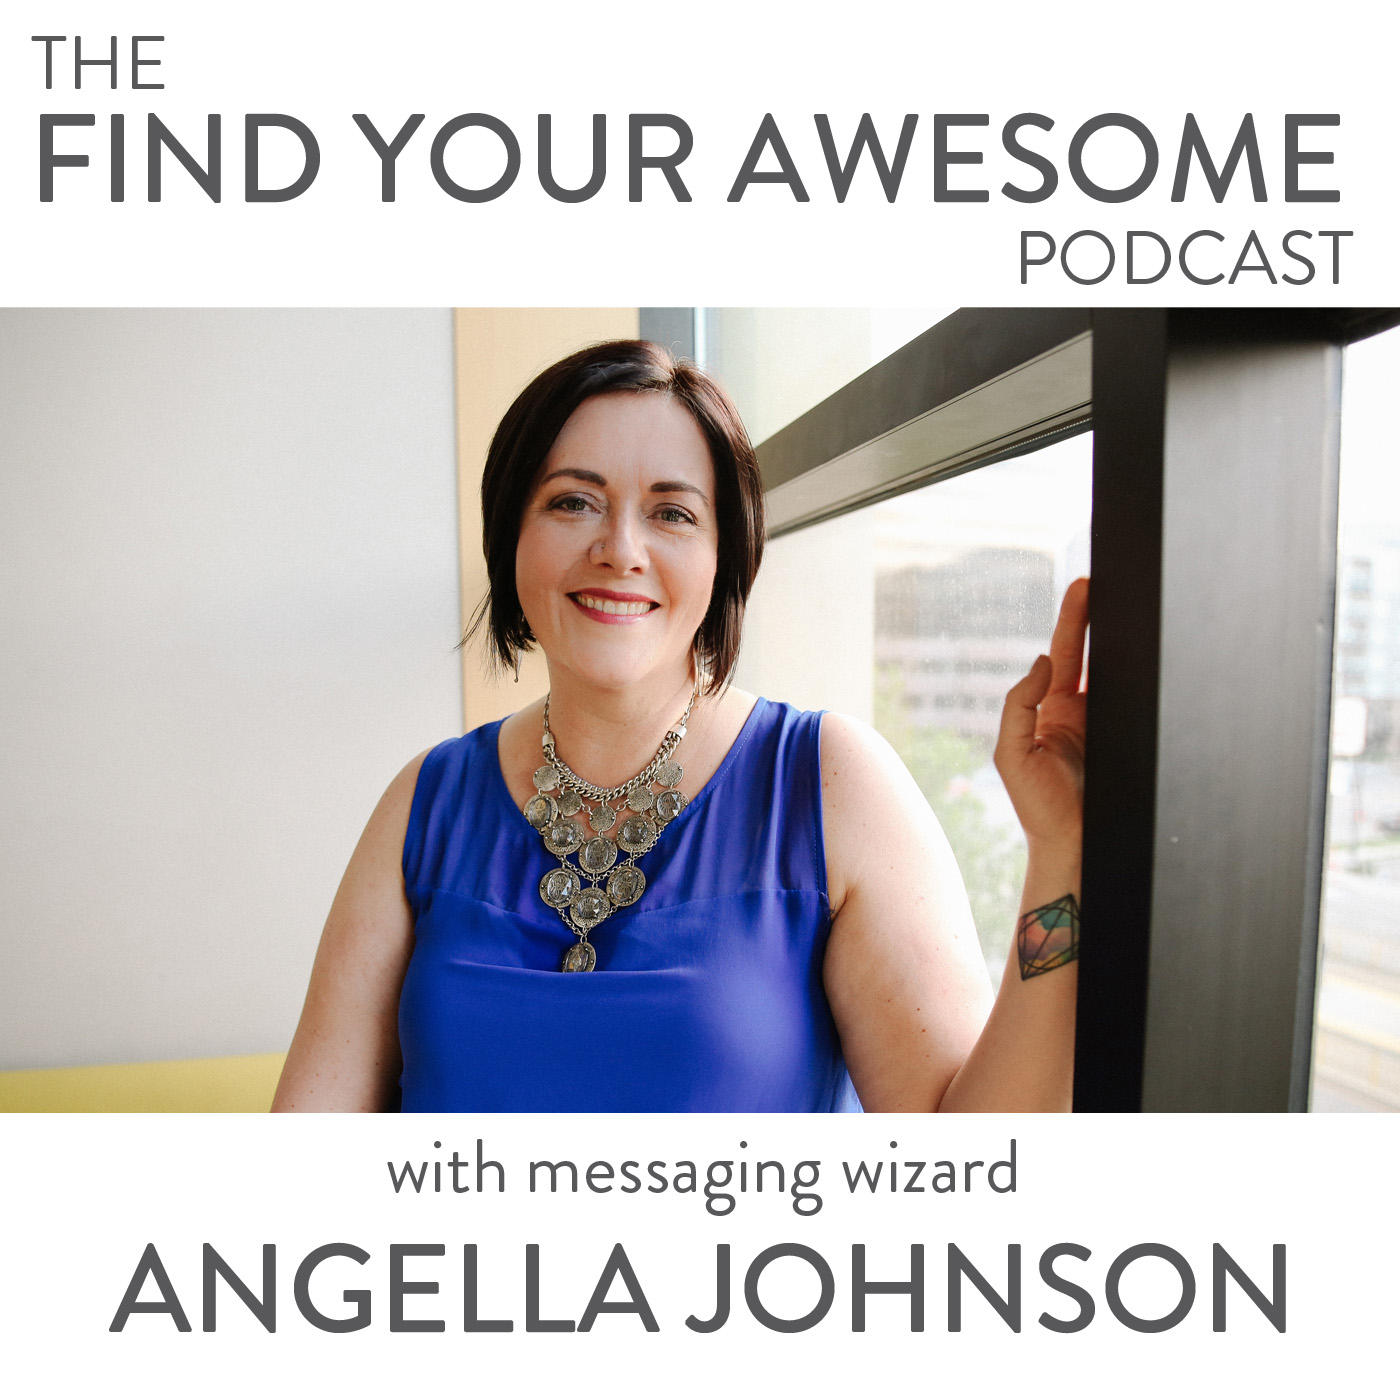 AngellaJohnson_podcast_coverart.jpg